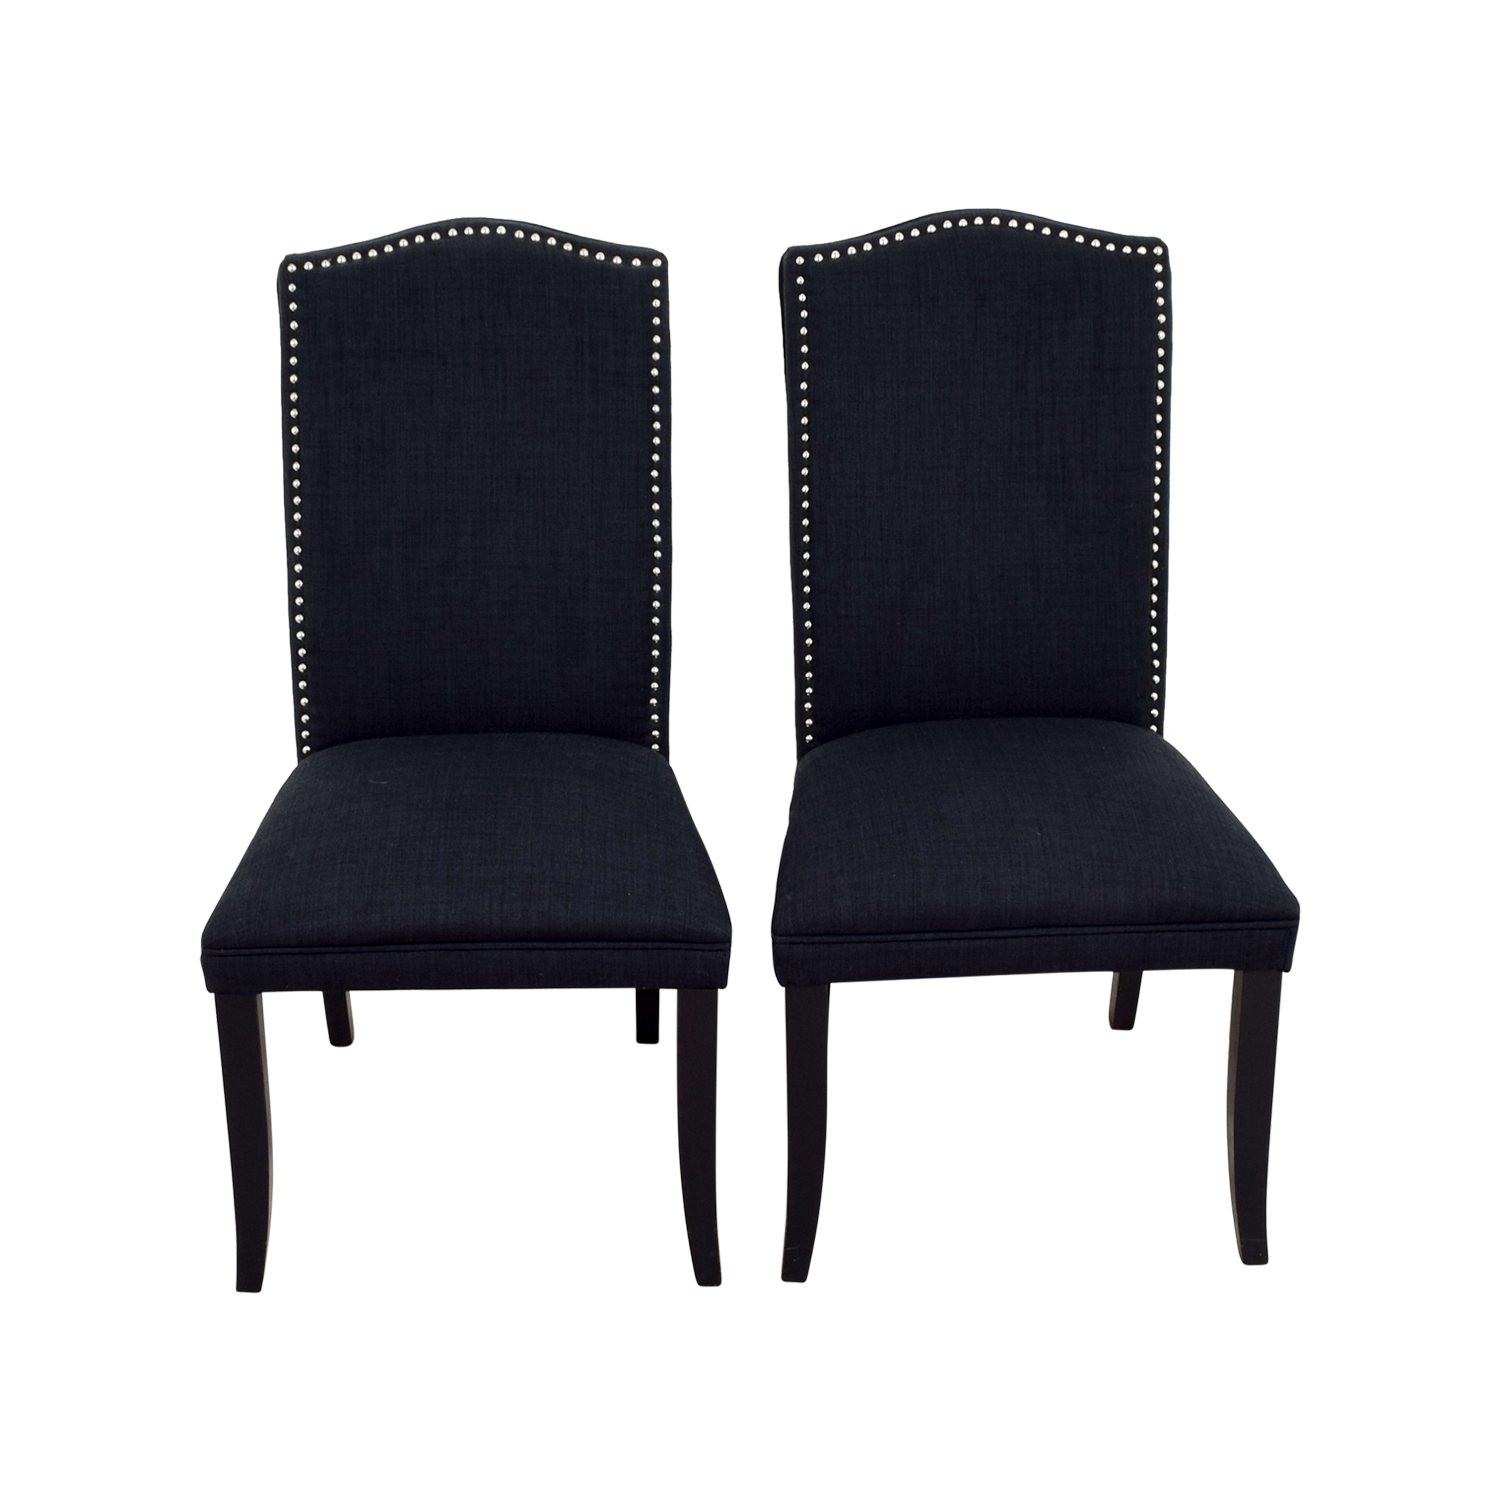 ... Cortesi Home Cortesi Home Linen Upholstered Nailhead Chairs Dimensions  ...